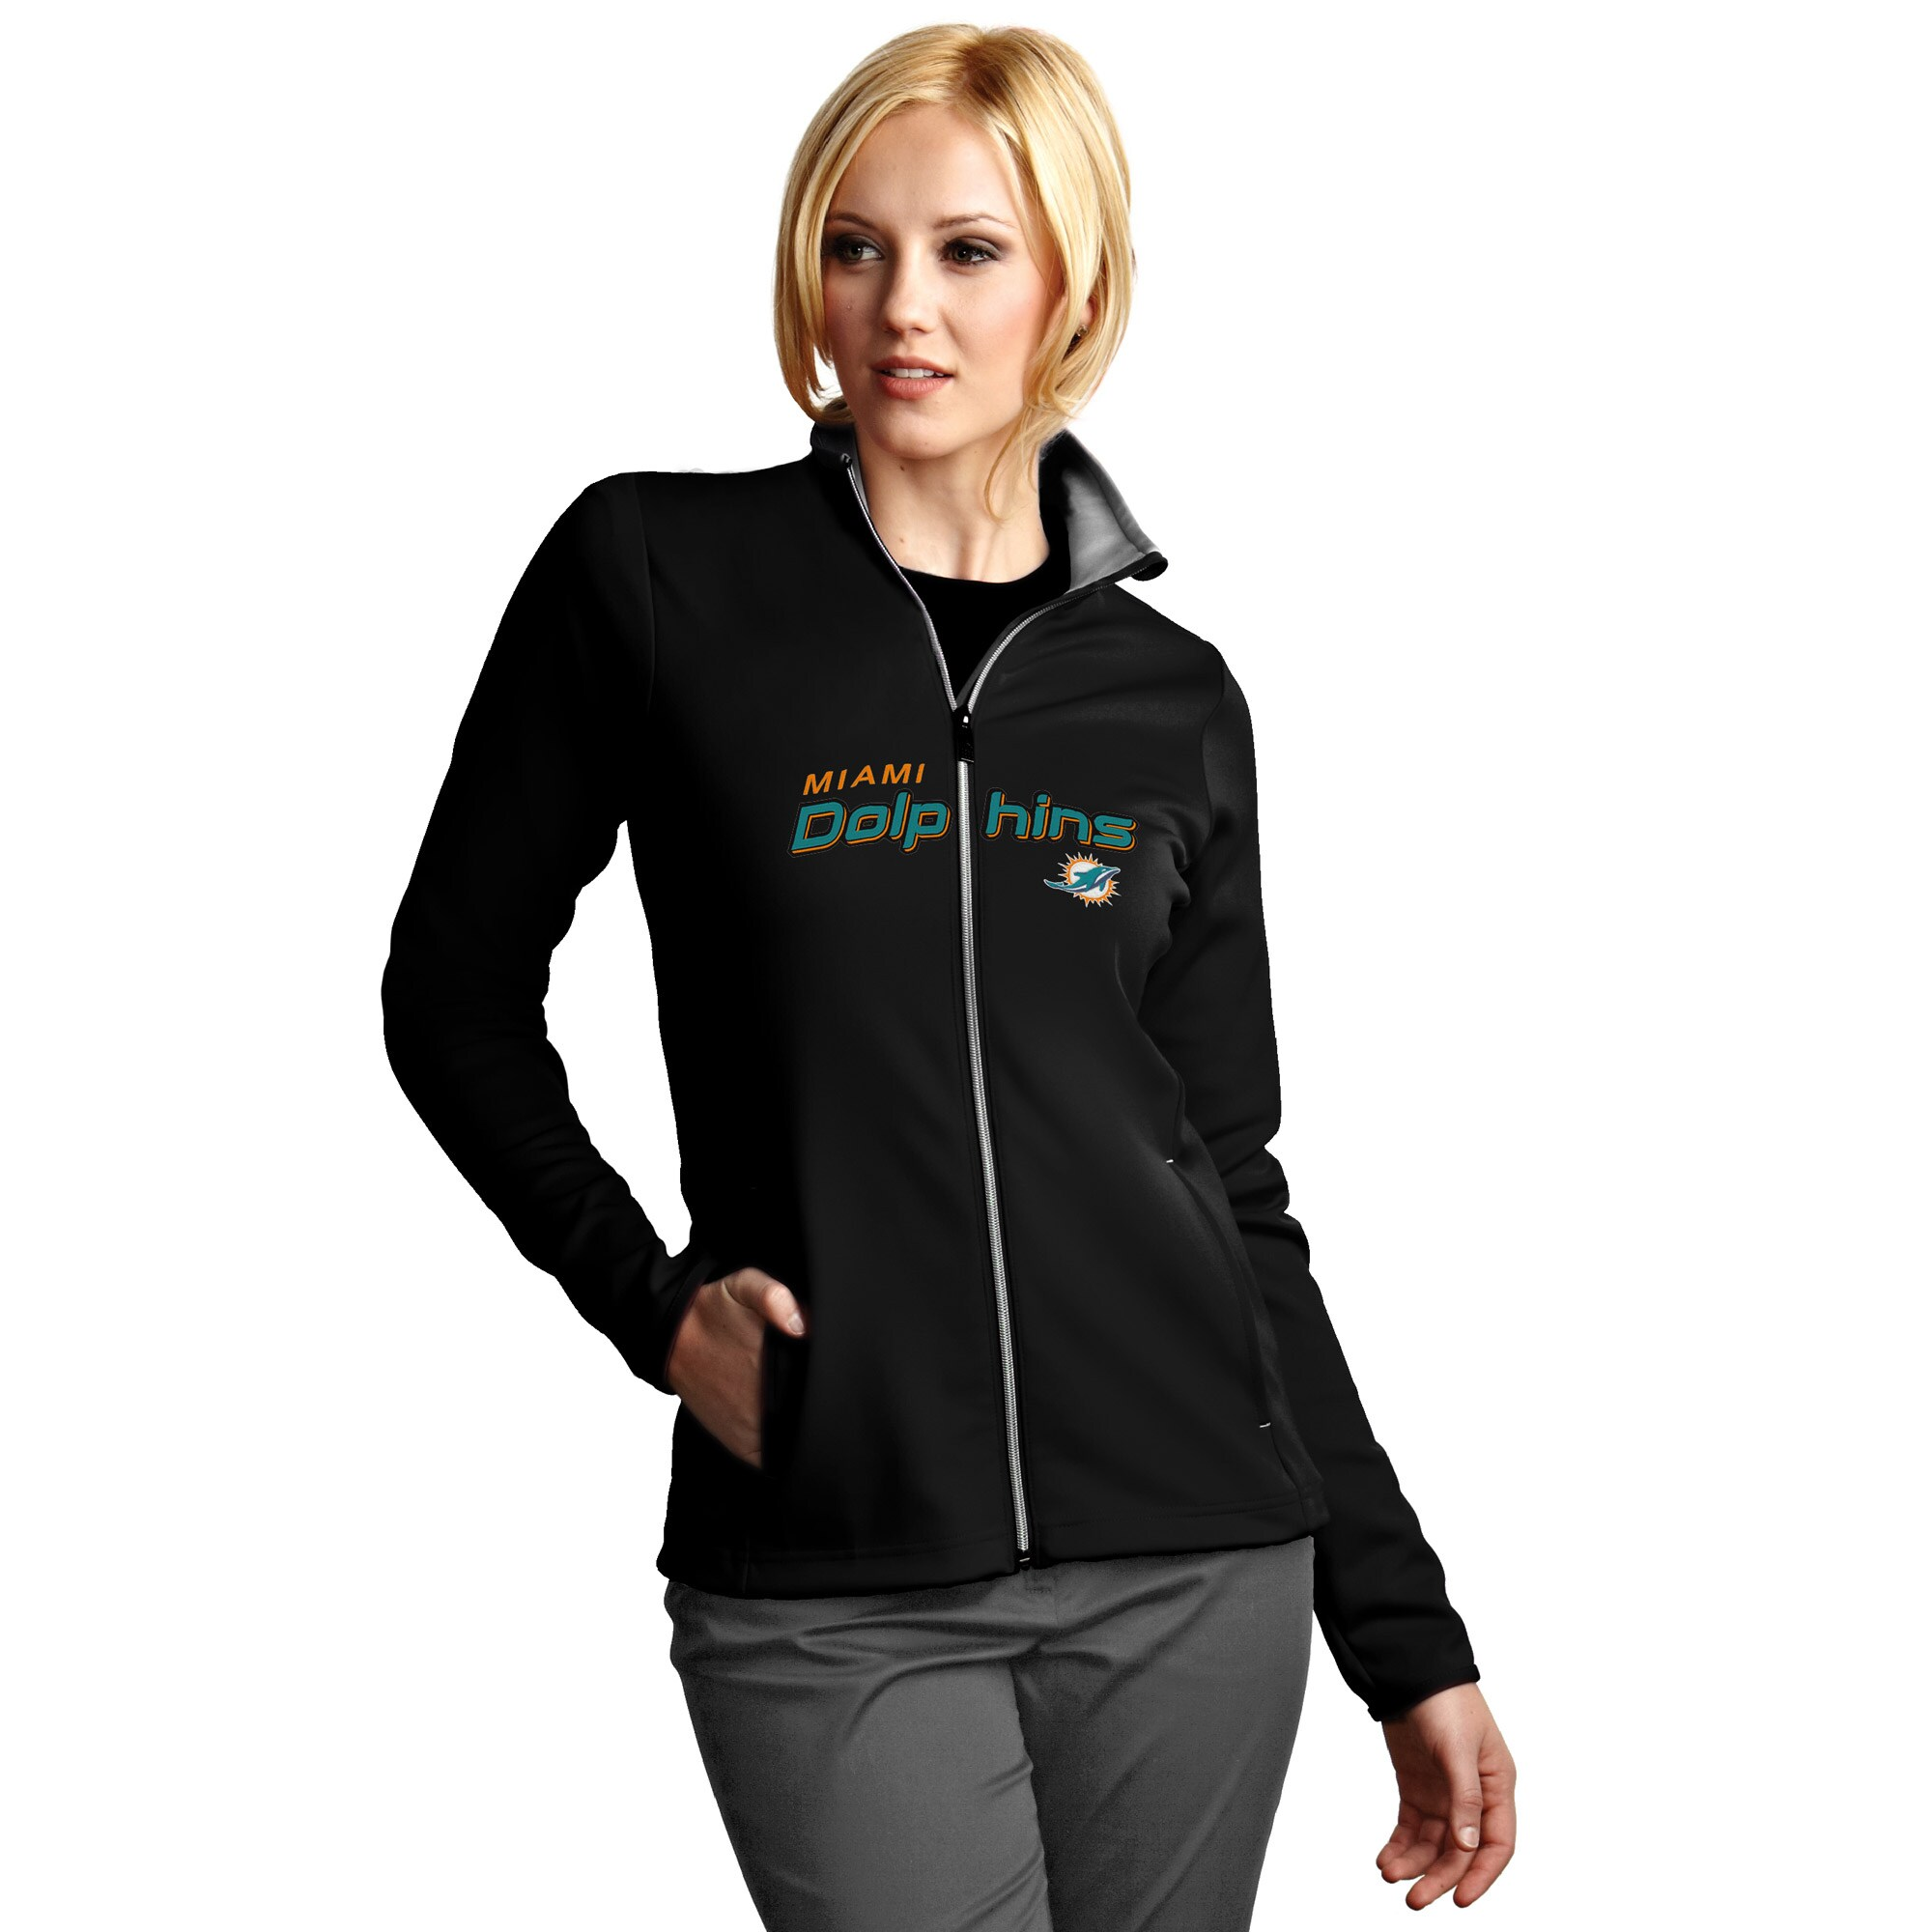 Miami Dolphins Antigua Women's Leader Full Chest Graphic Desert Dry Full-Zip Jacket - Black